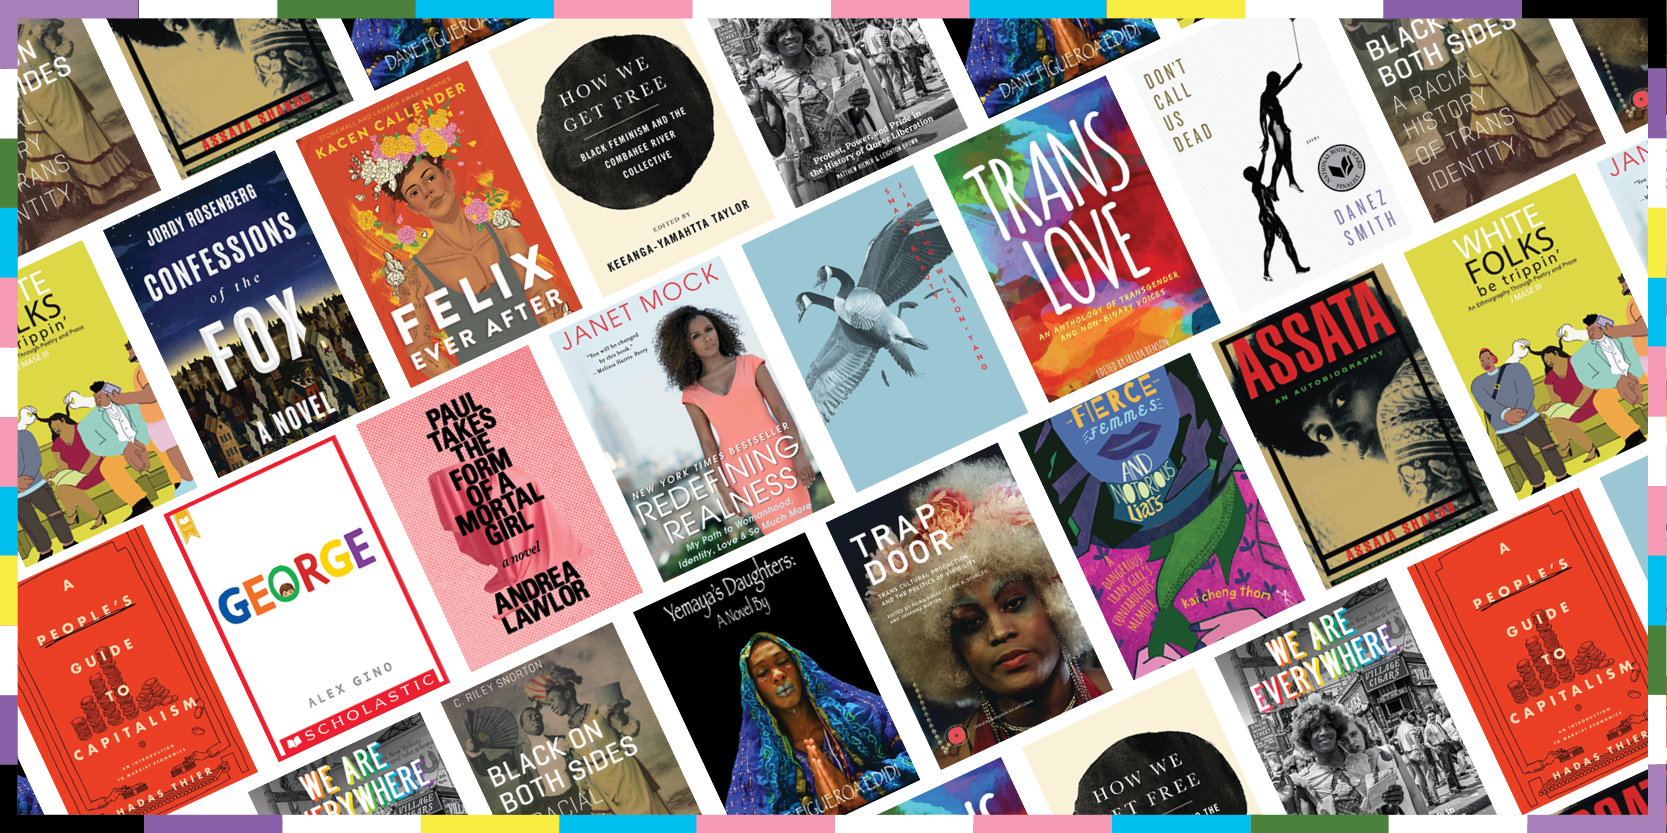 Transgender Awareness Week reading list - book covers